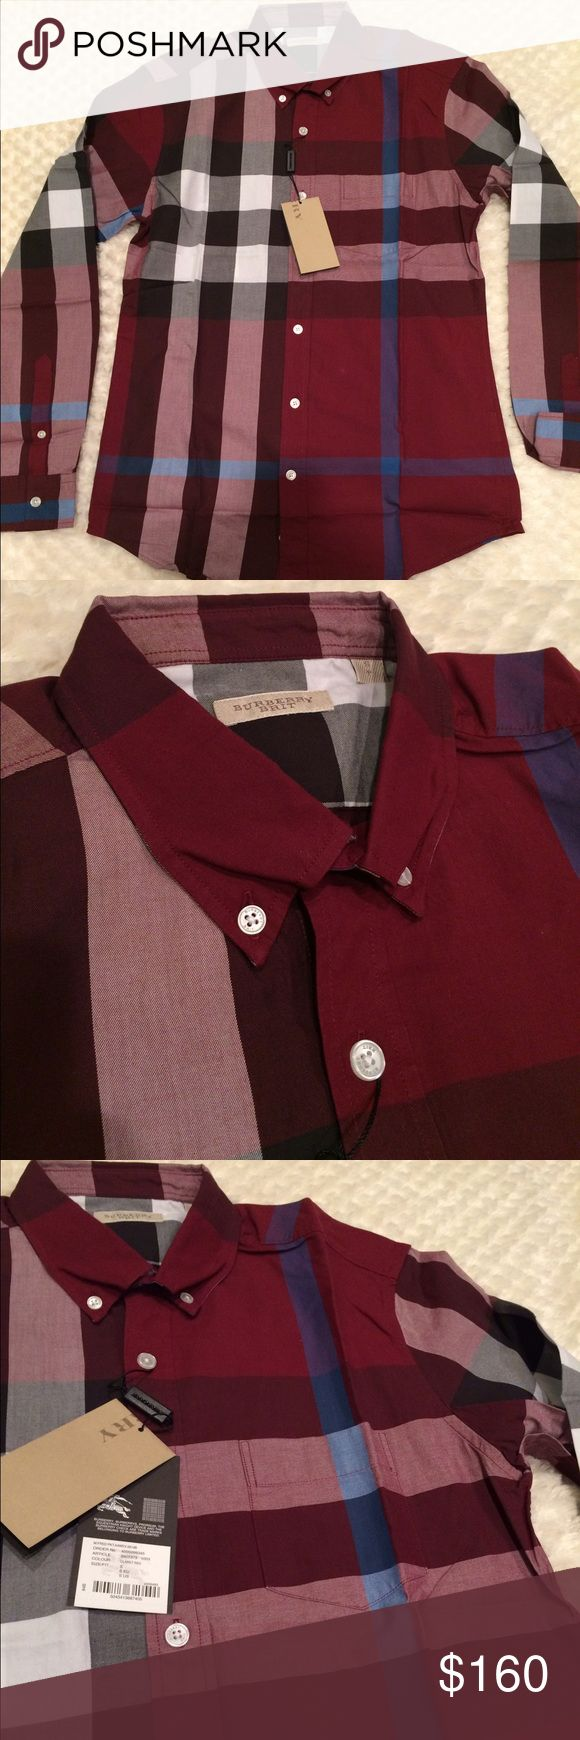 New burberry shirt for men S New with tags burberry shirt size small 100%cotton long sleeves Burberry Tops Button Down Shirts